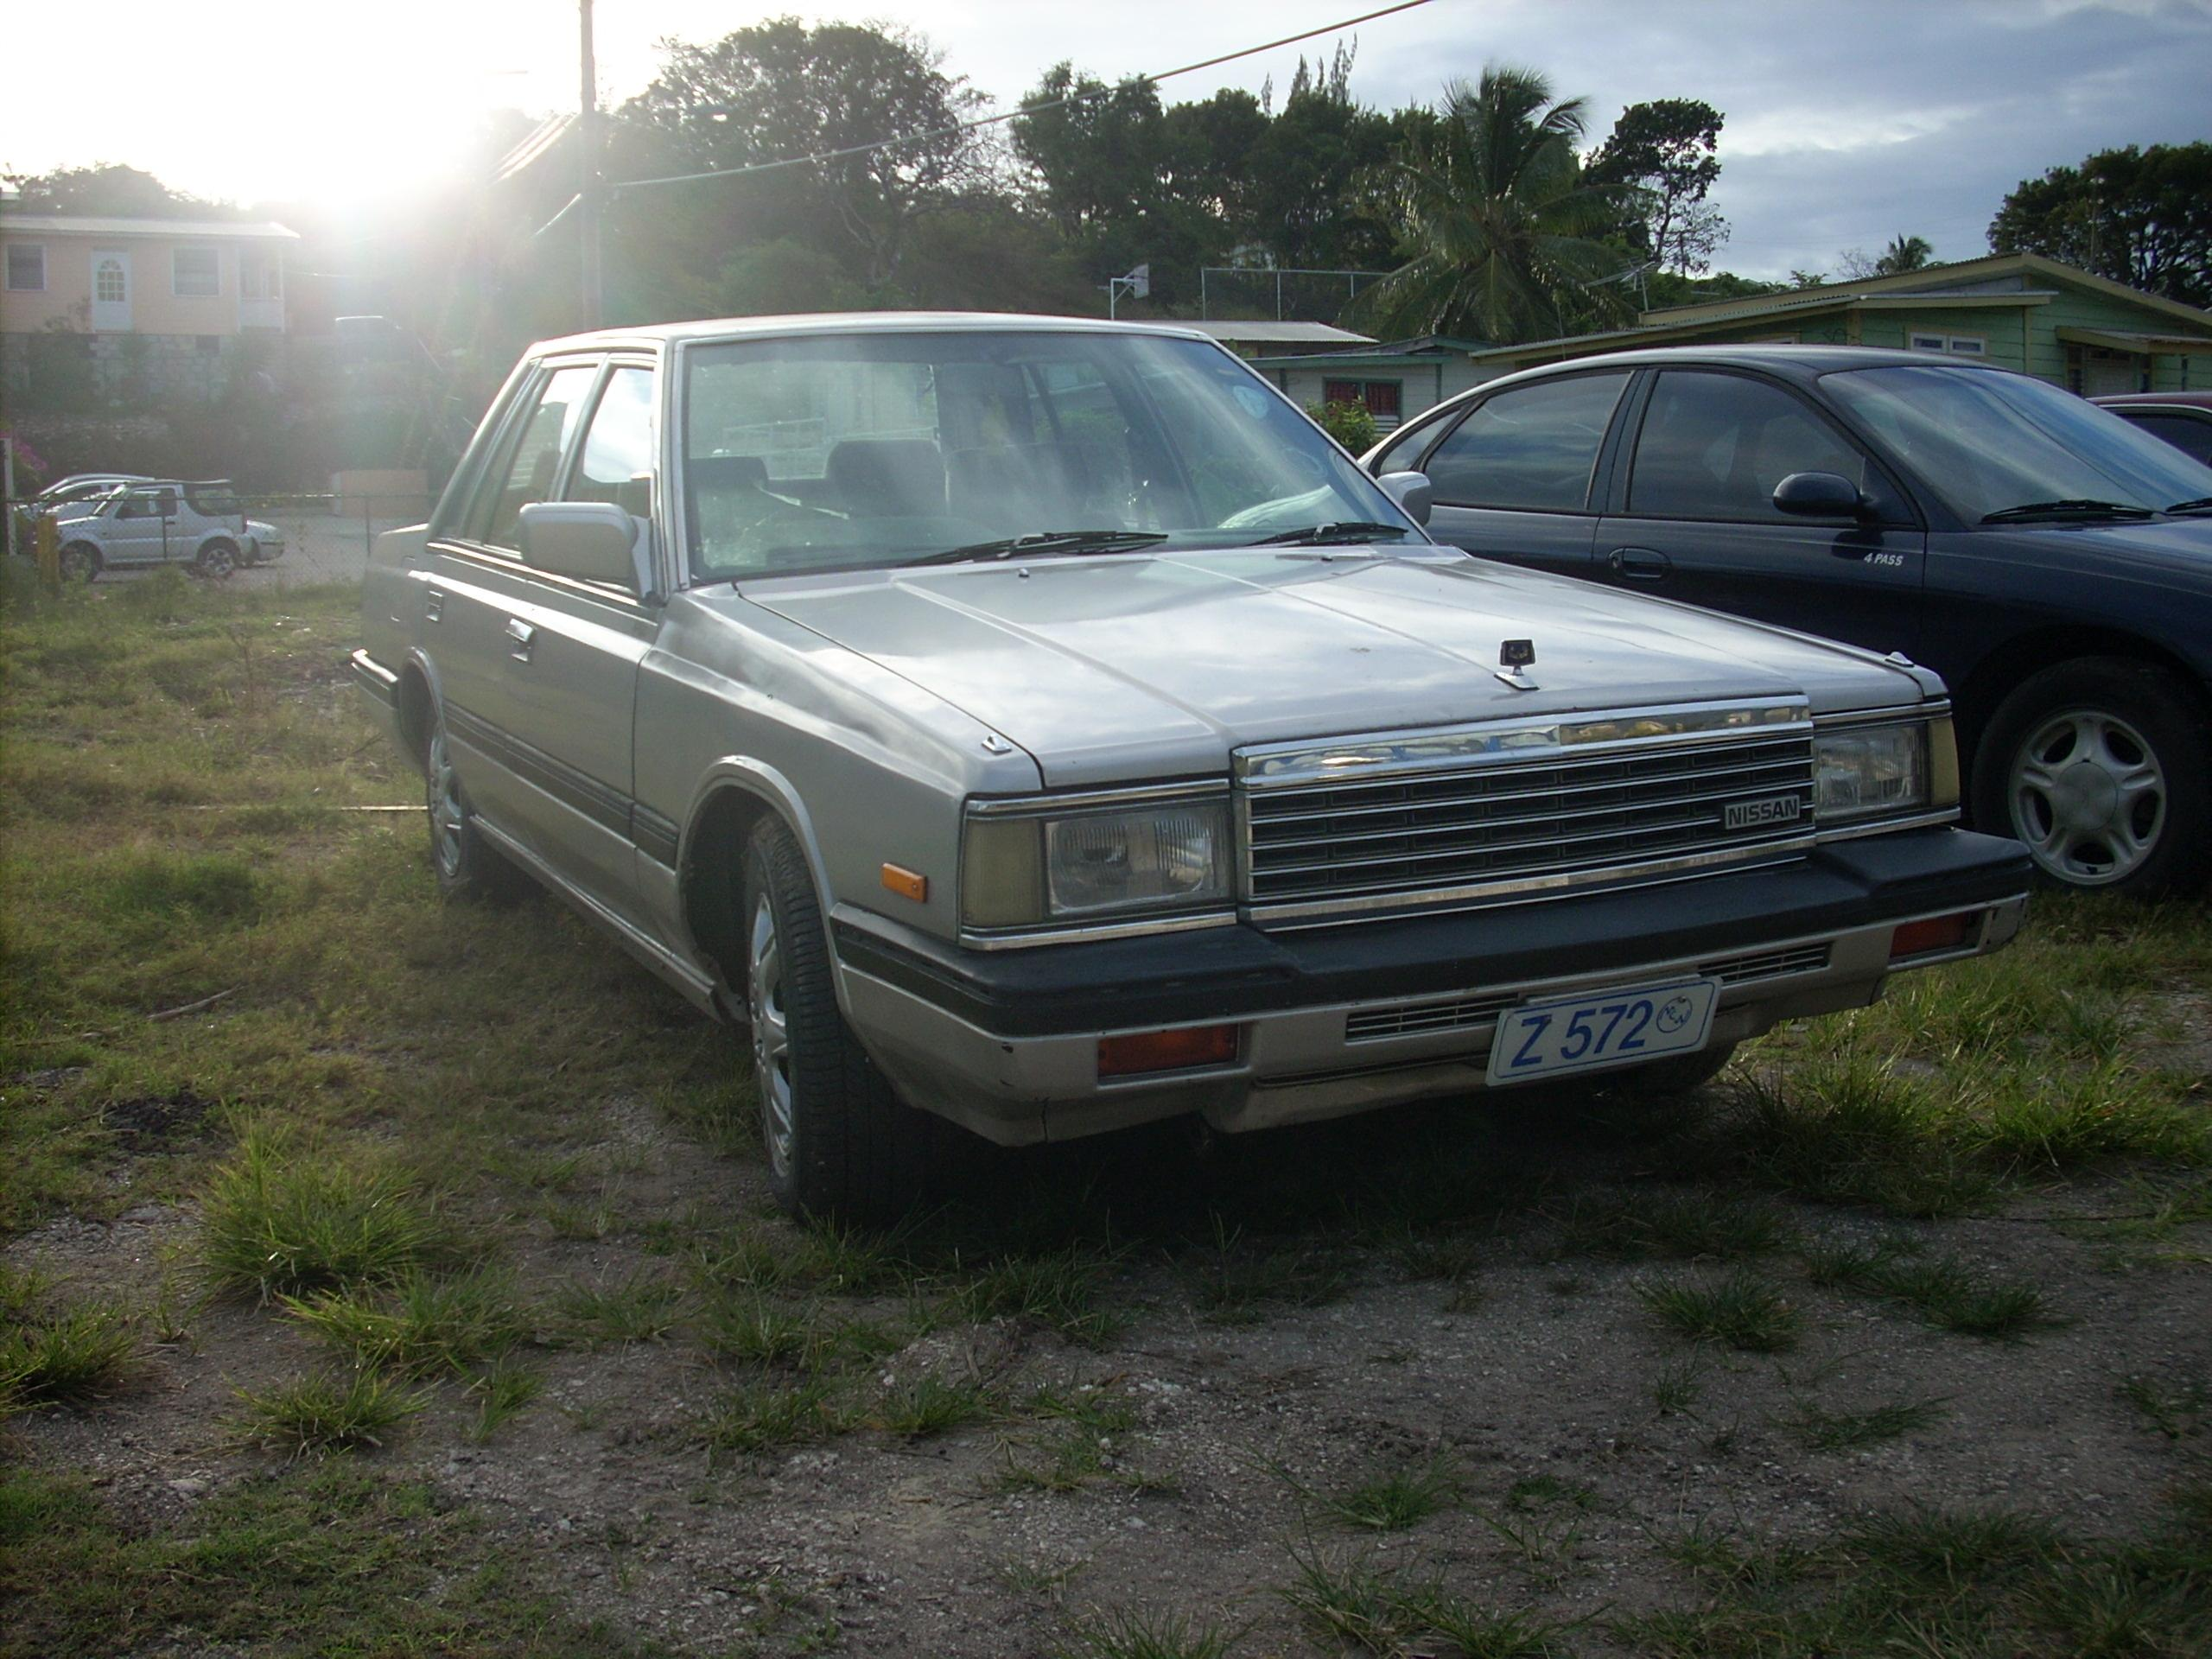 1985 Nissan Laurel